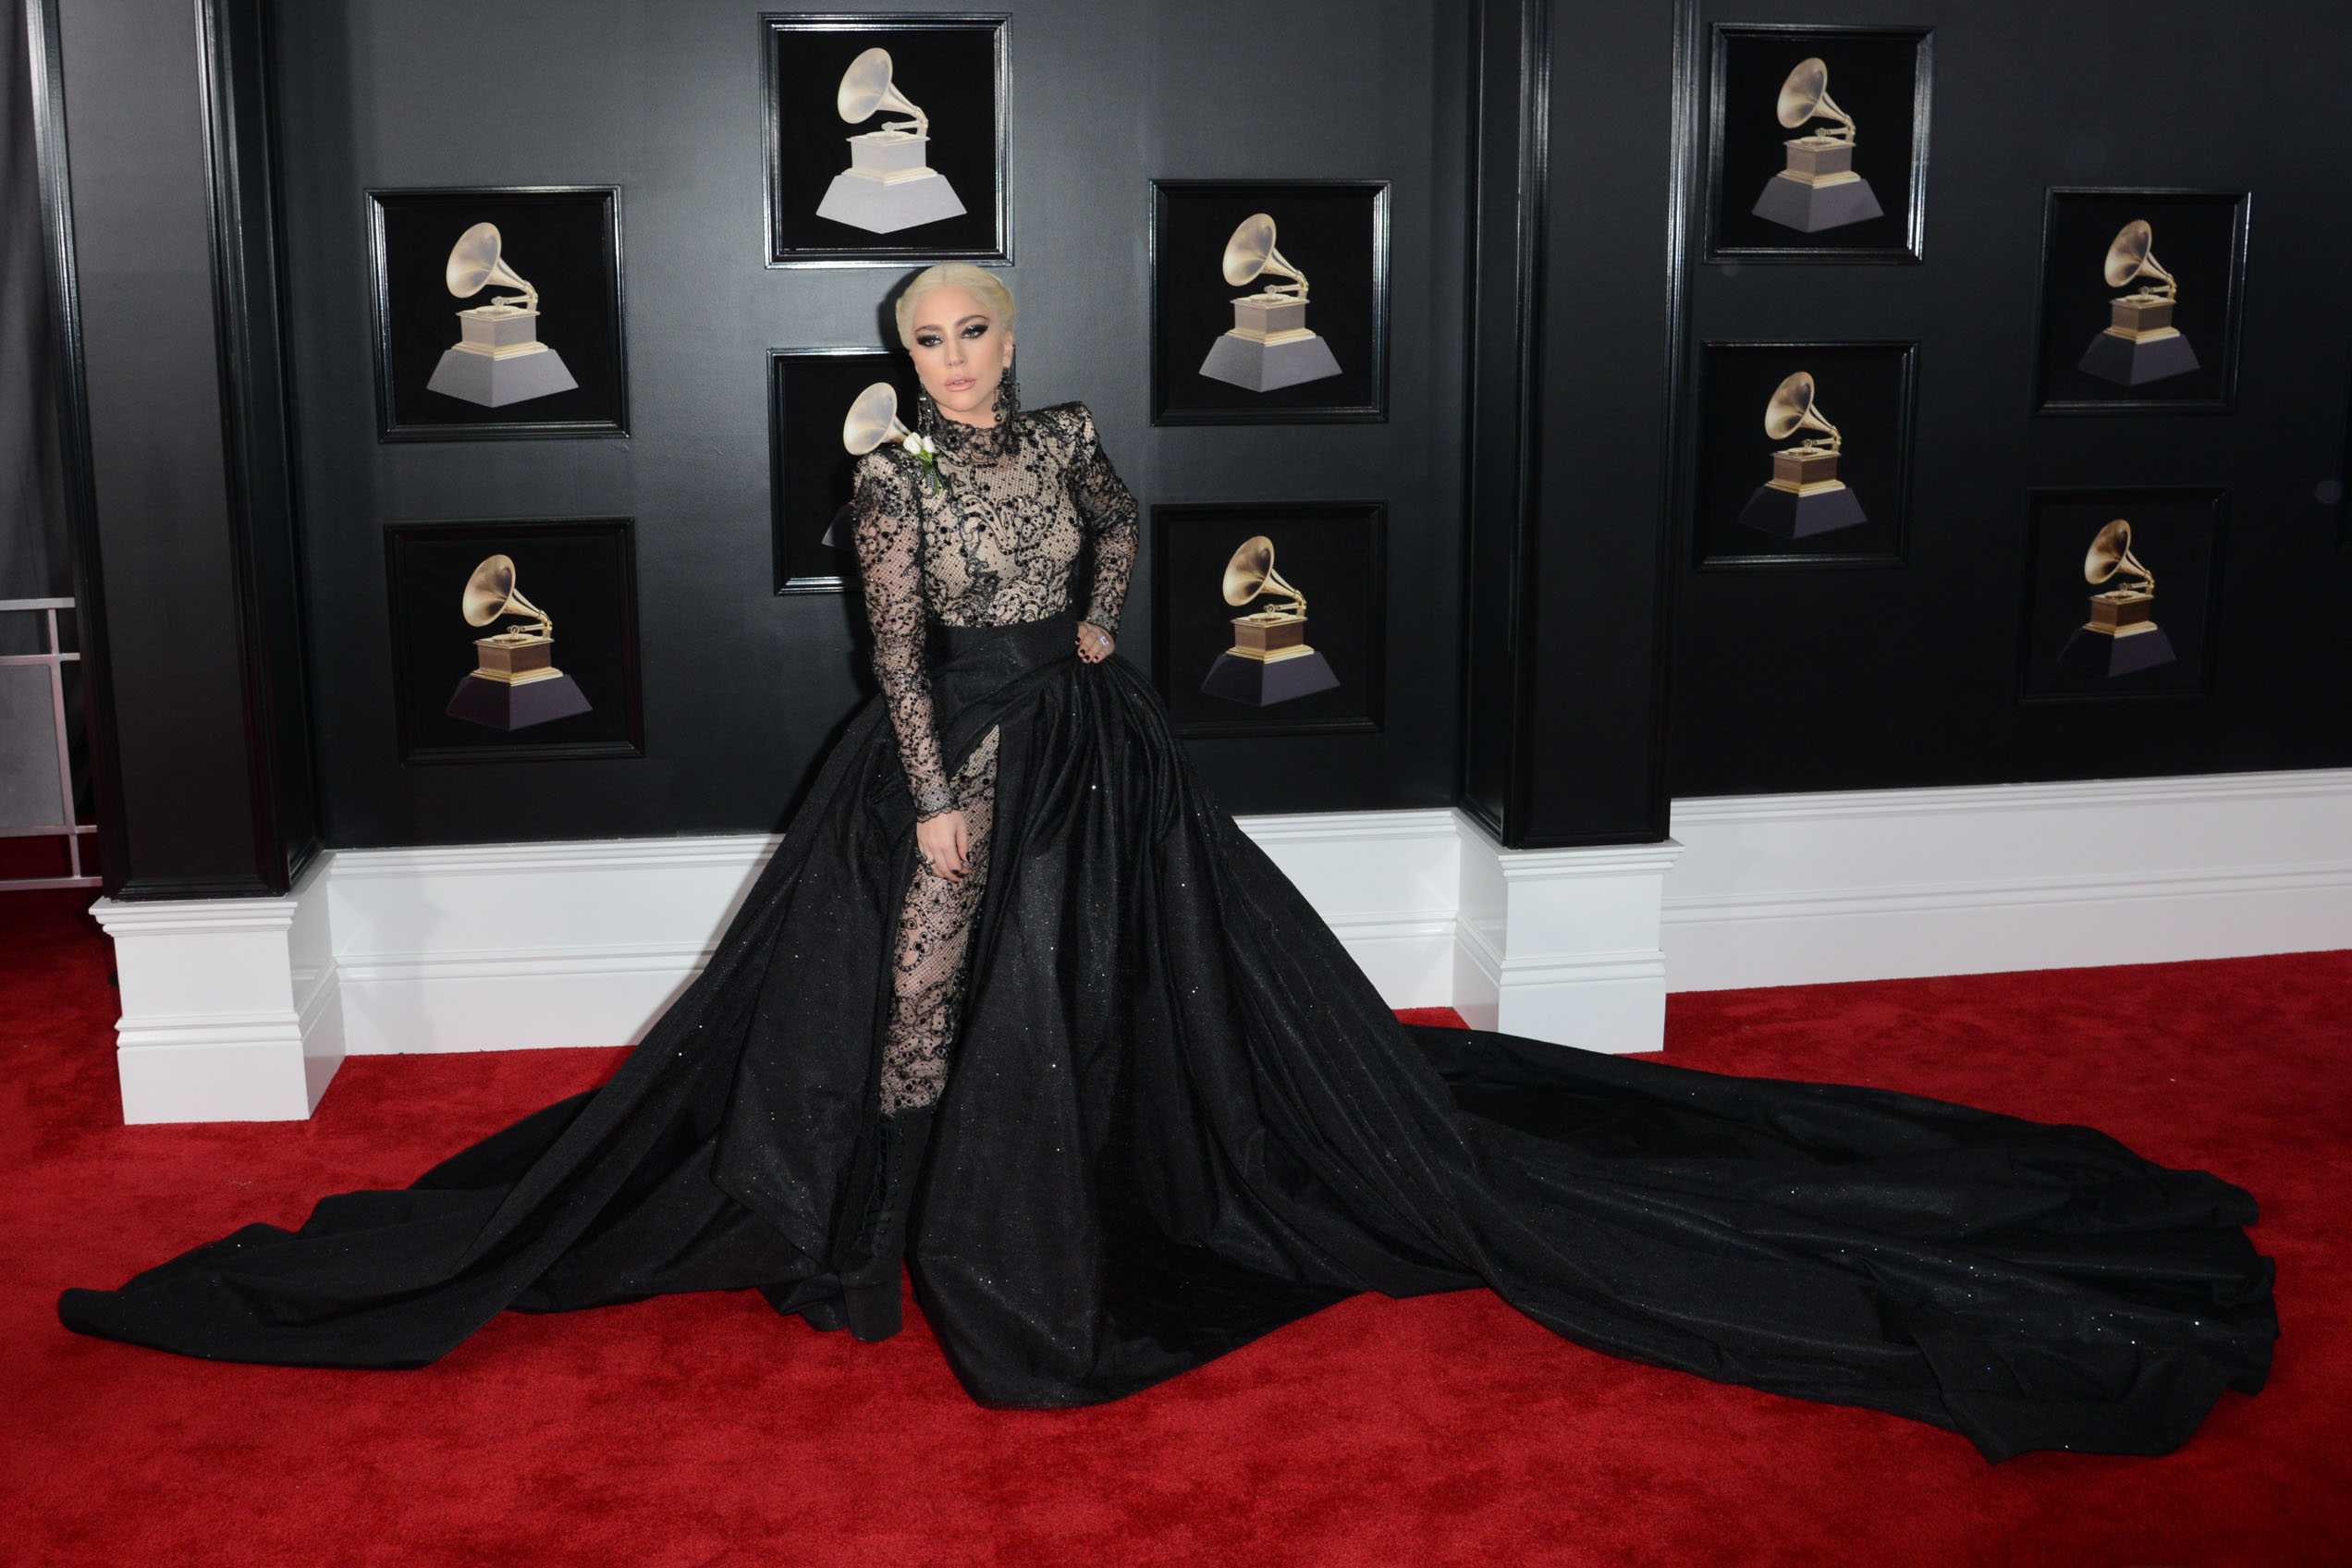 60th Annual GRAMMY Awards held at Madison Square GardenFeaturing: Lady GagaWhere: New York, New York, United StatesWhen: 28 Jan 2018Credit: Ivan Nikolov/WENN.com